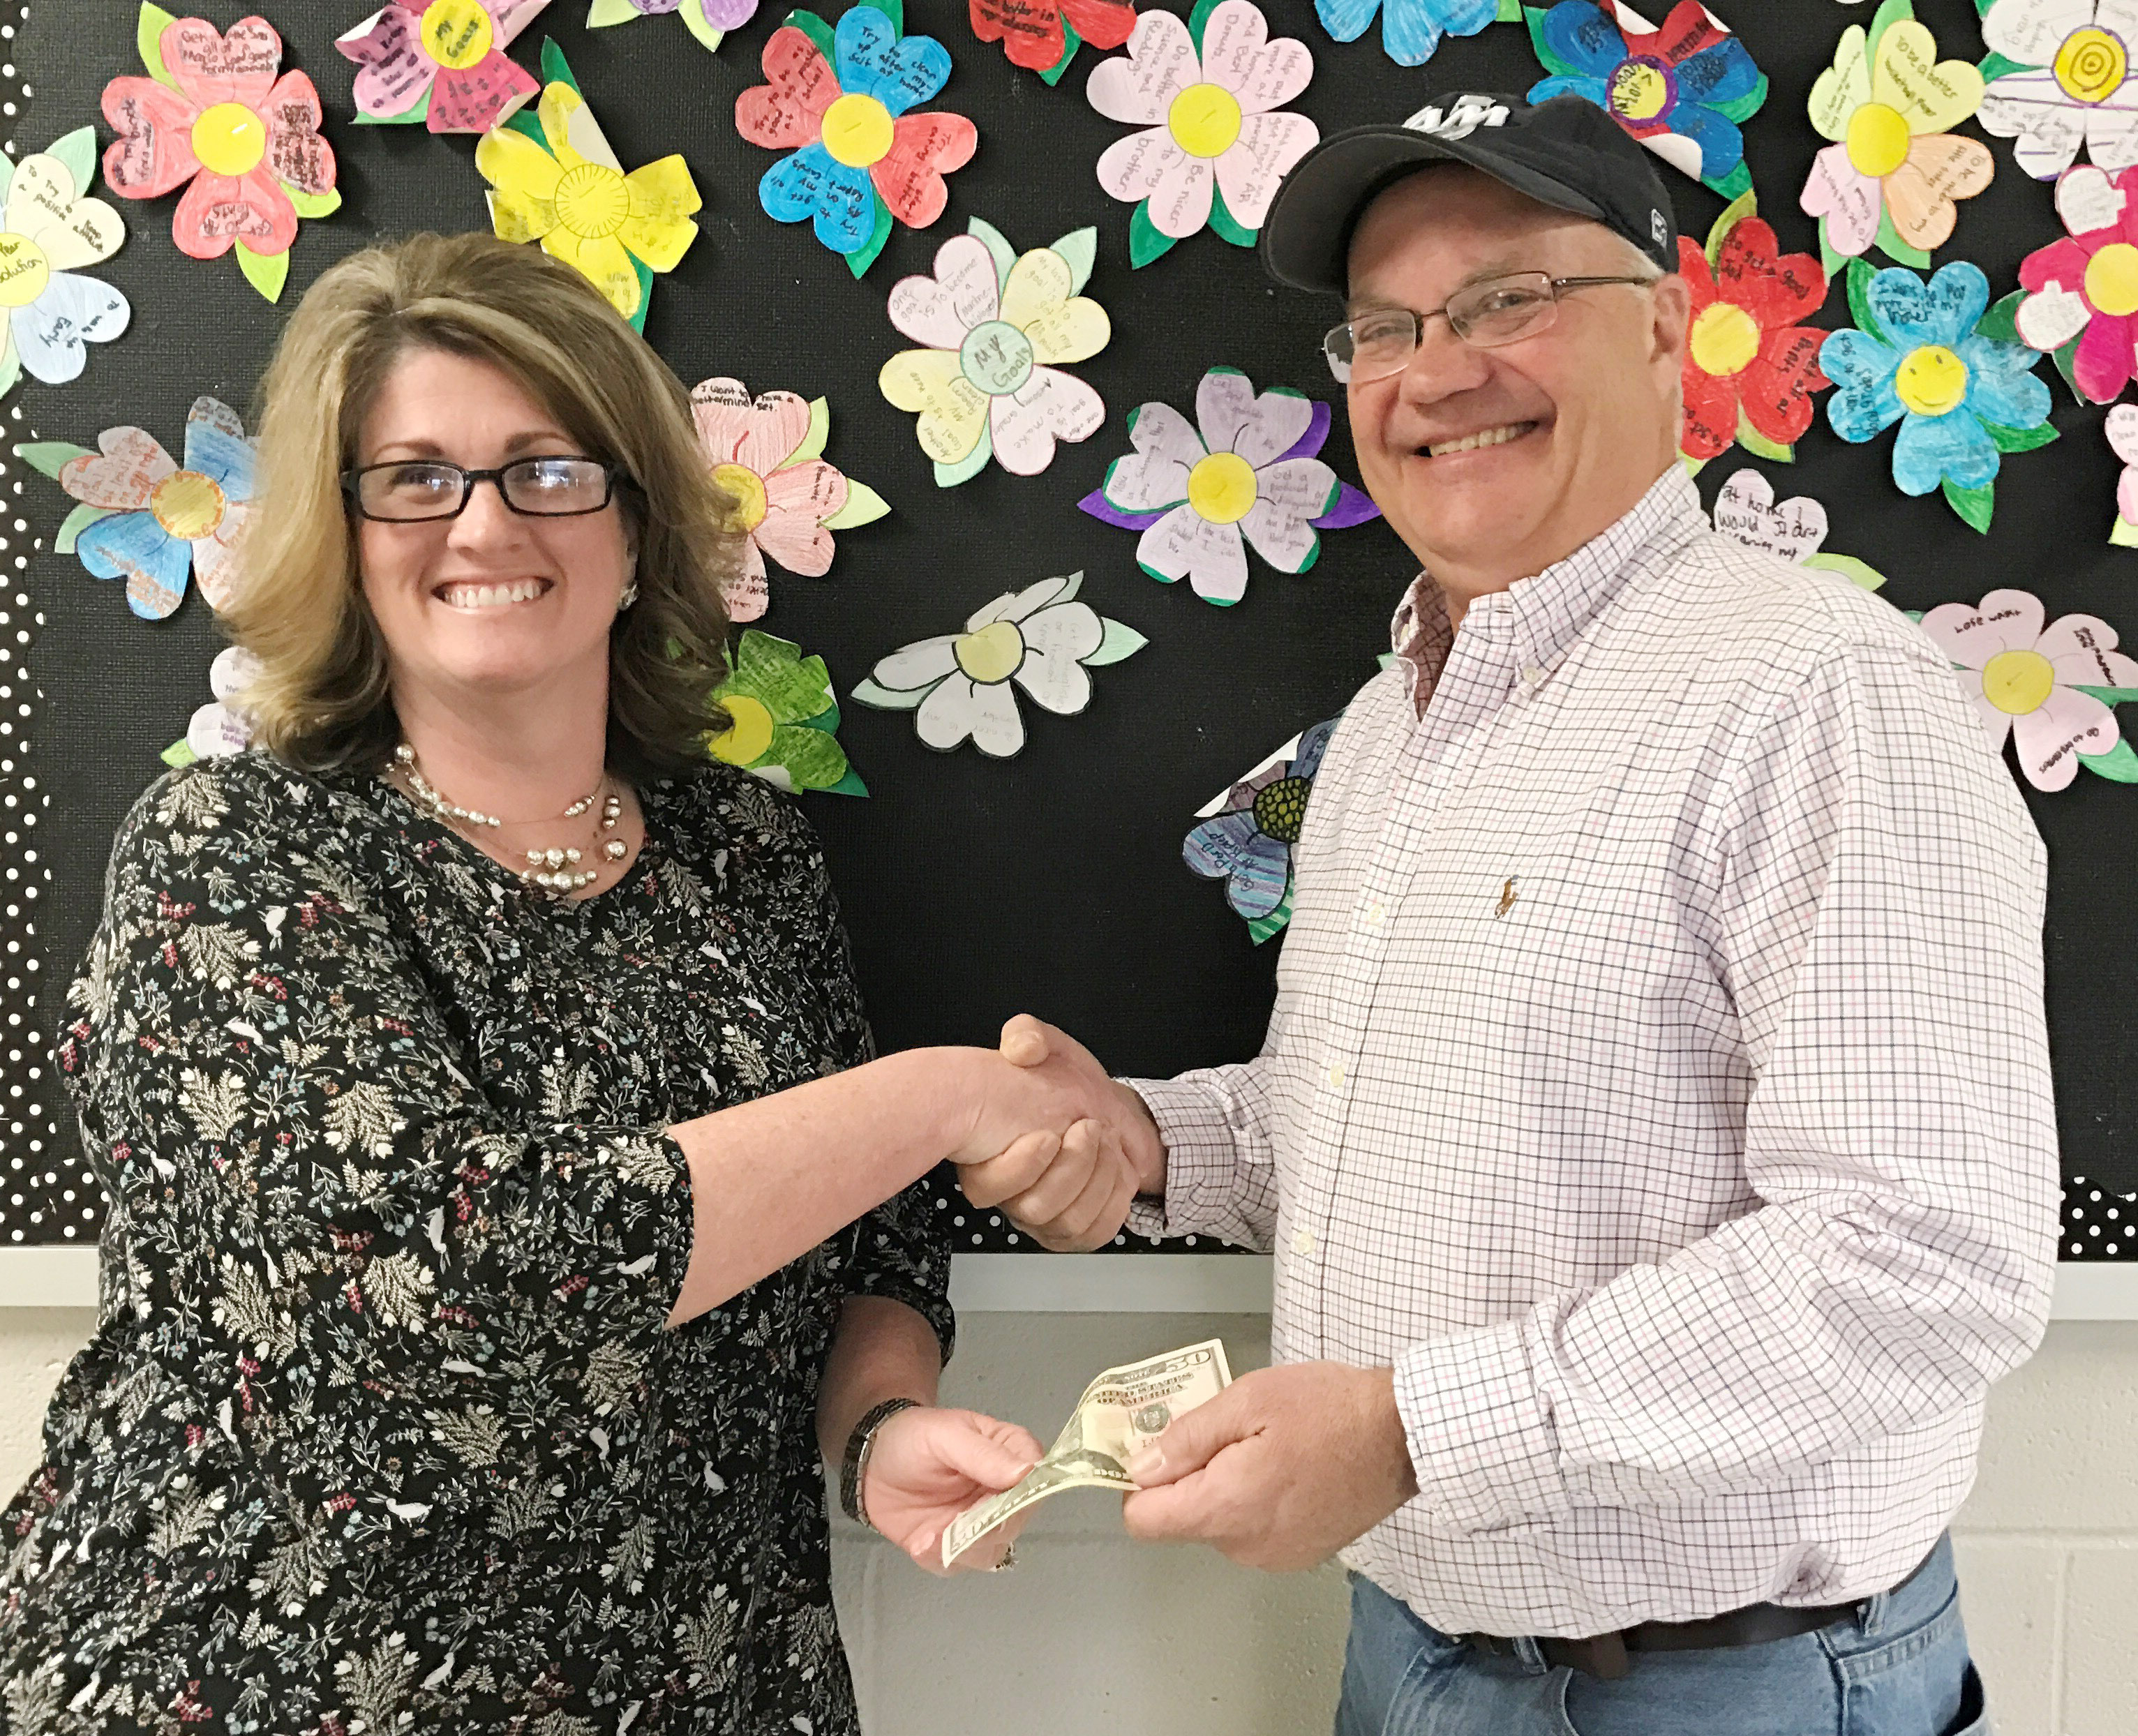 Taylor County Conservation District Board Member Barry Smith gives CMS fifth-grade teacher Donna White a $50 prize for her student Lillee Byrne being the overall CMS art contest winner.